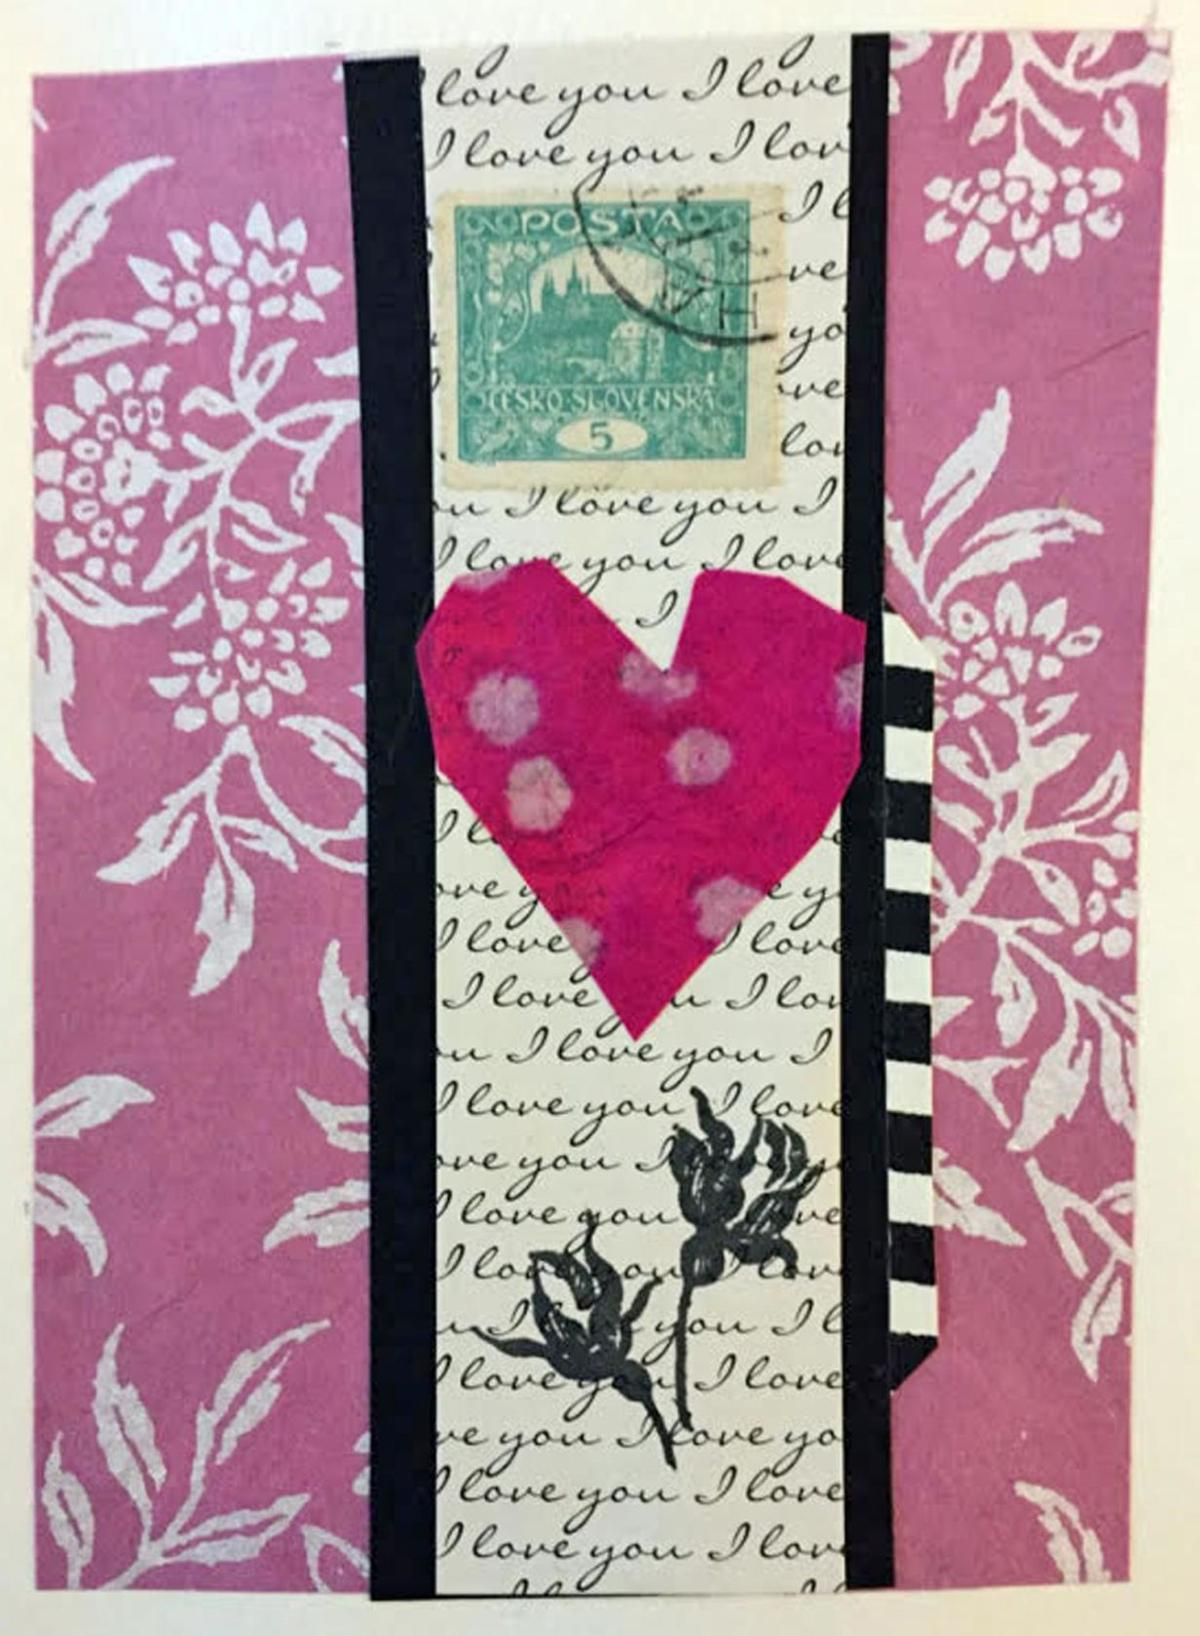 At Flanders Nature Center make a Valentine collage for your sweetheart